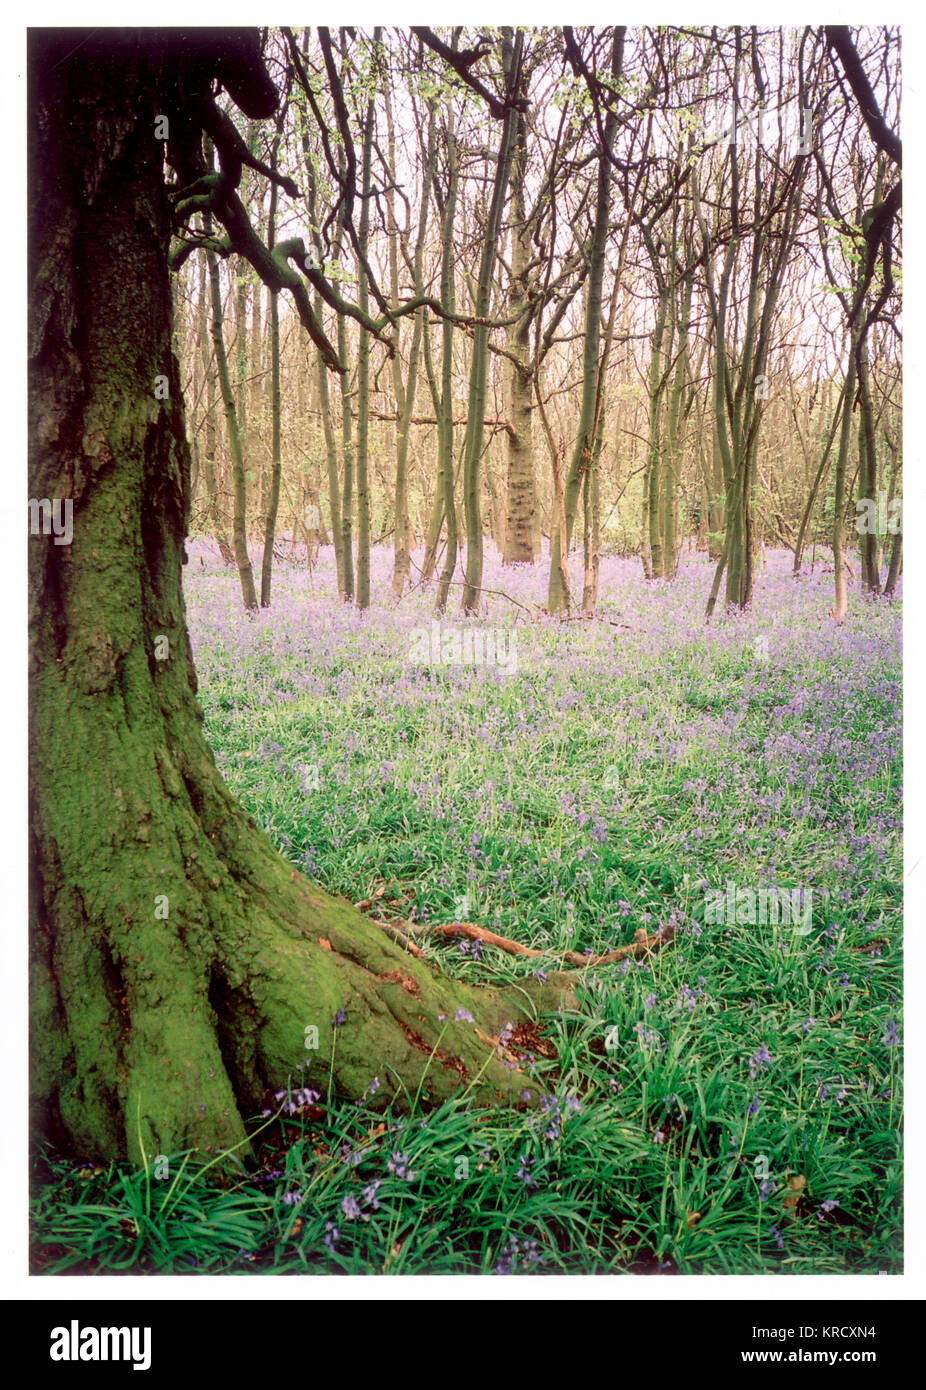 A gnarled, moss-covered tree  stands alone in a clearing  surrounded by coppiced trees.  A carpet of fragrant English - Stock Image